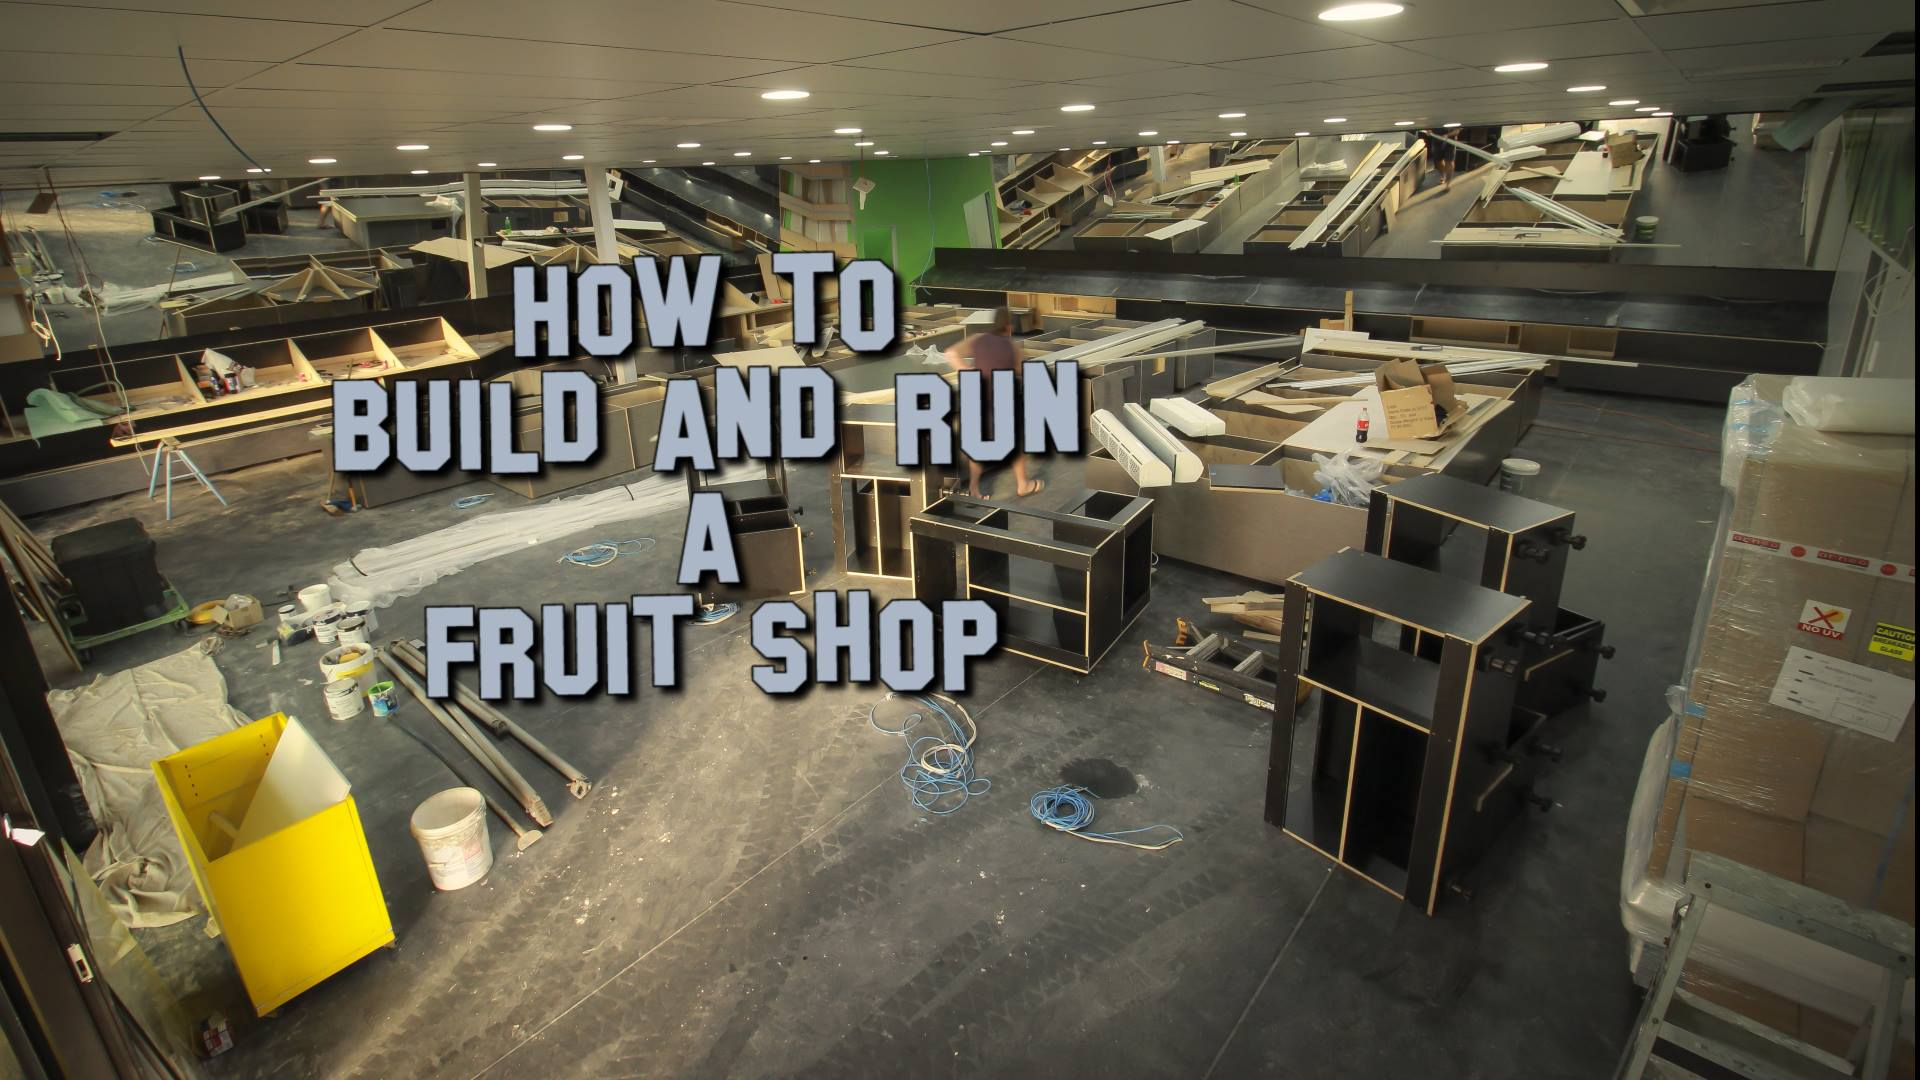 HOW TO BUILD AND RUN A FRUIT SHOP